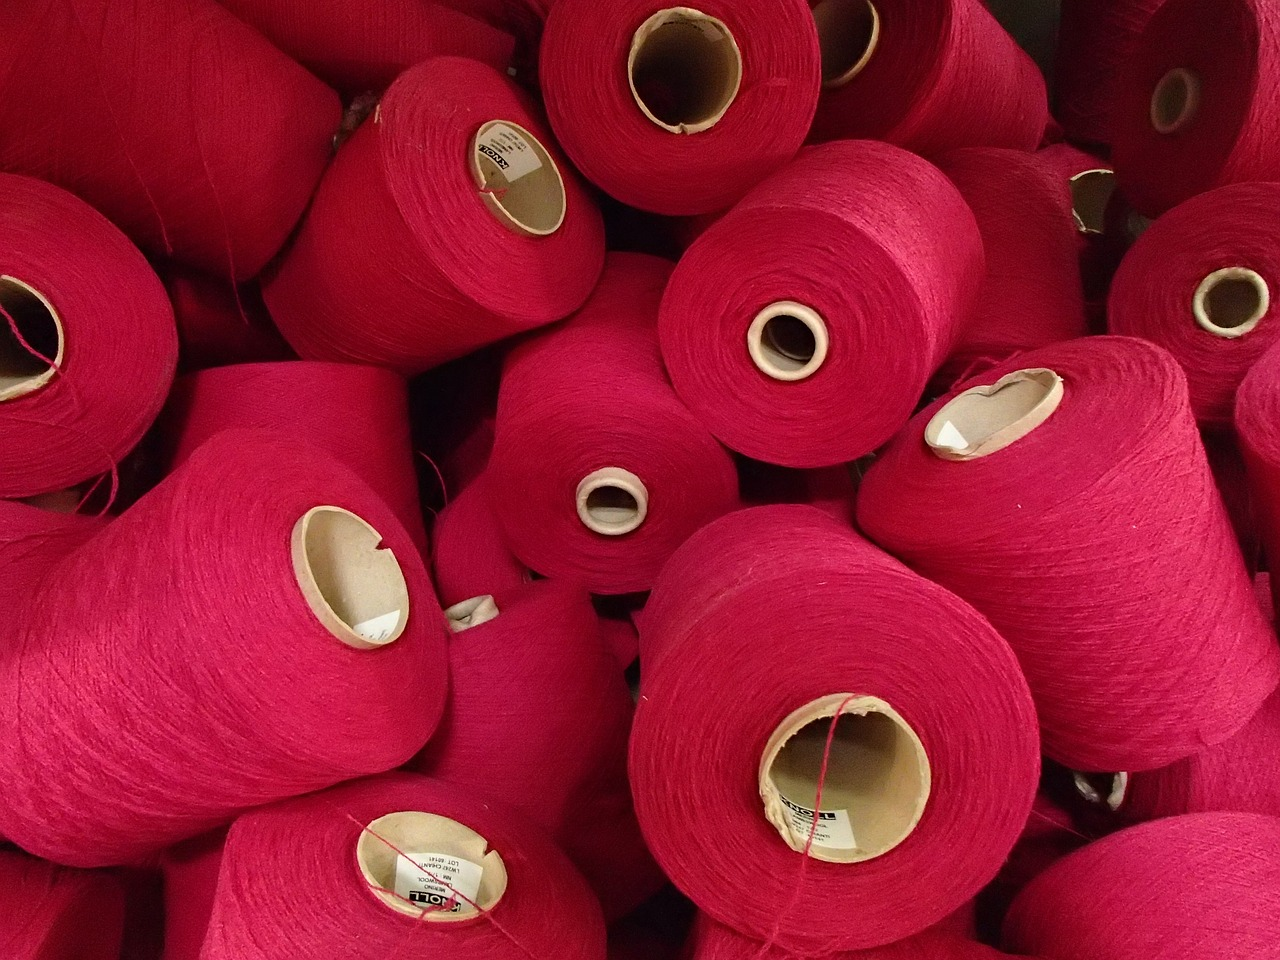 spools pink round yarn free photo